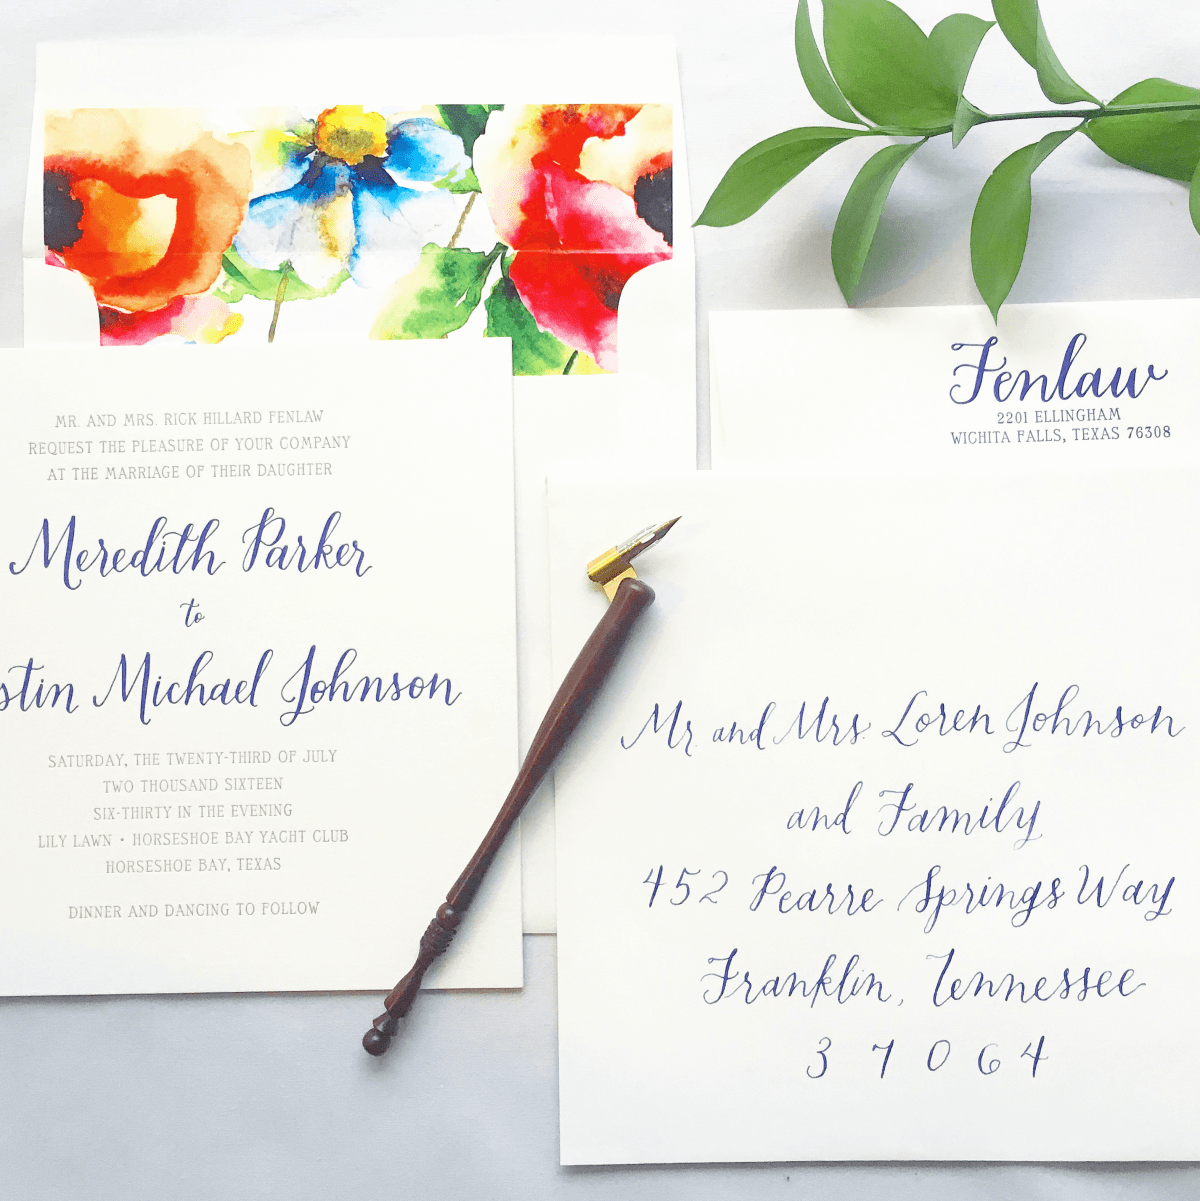 Exquisite Squid Allison Hembd wedding invitation calligraphy